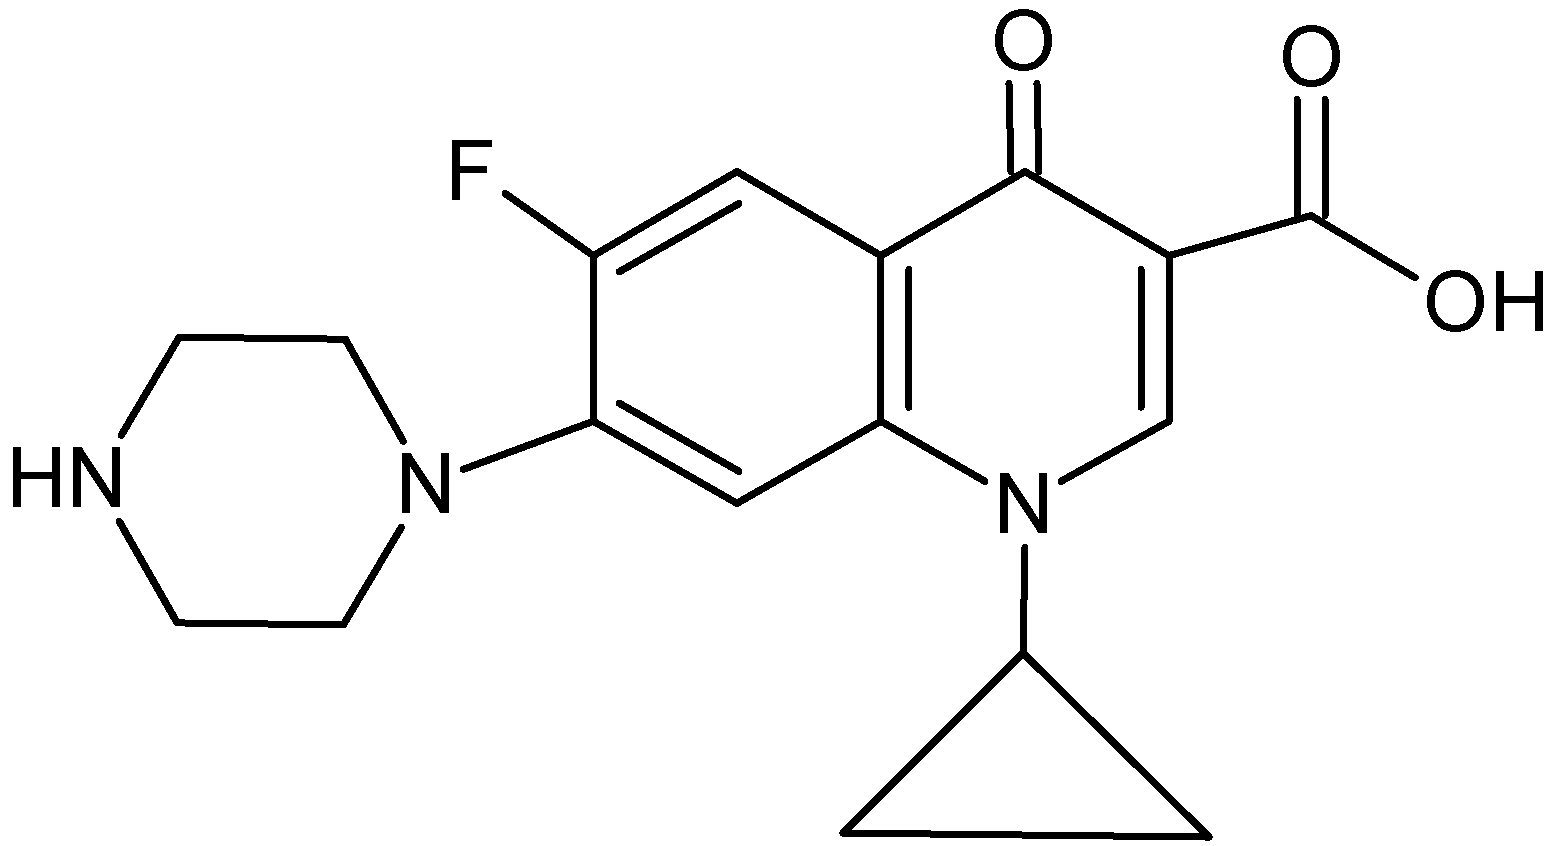 Ivermectin 12 mg tablet images